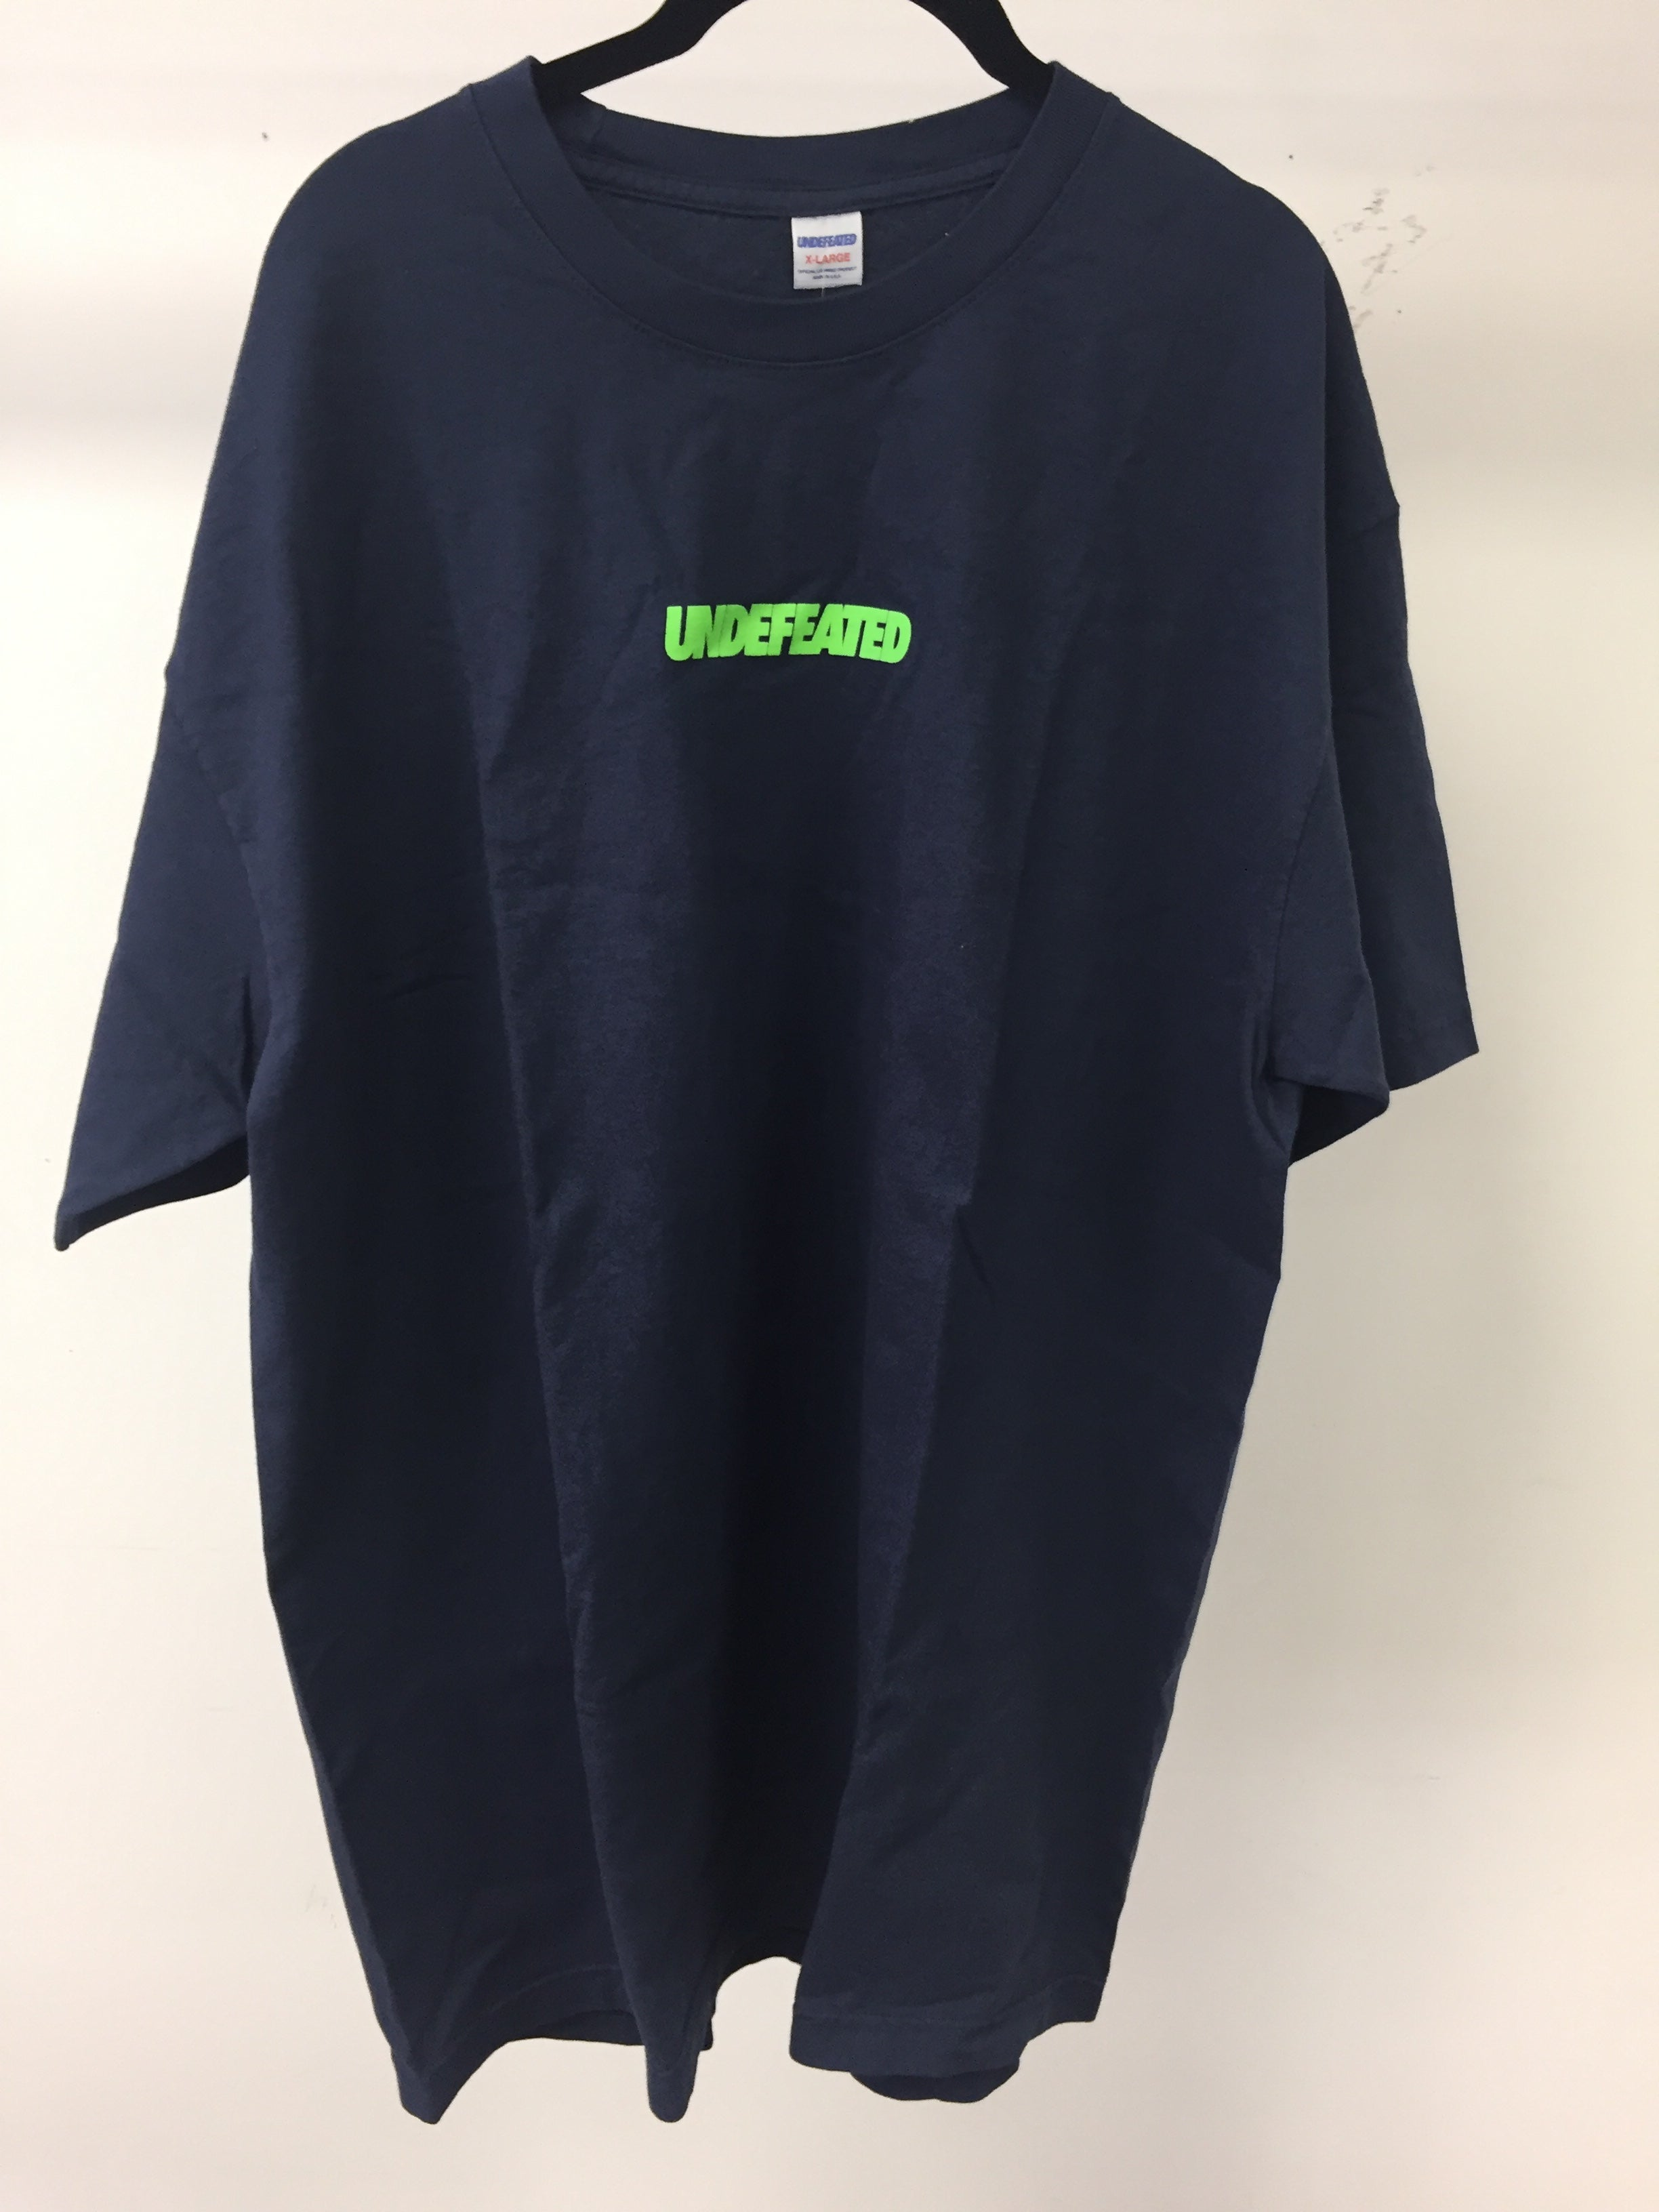 UNDEFEATED - TSHIRT - NAVY - SIZE XL